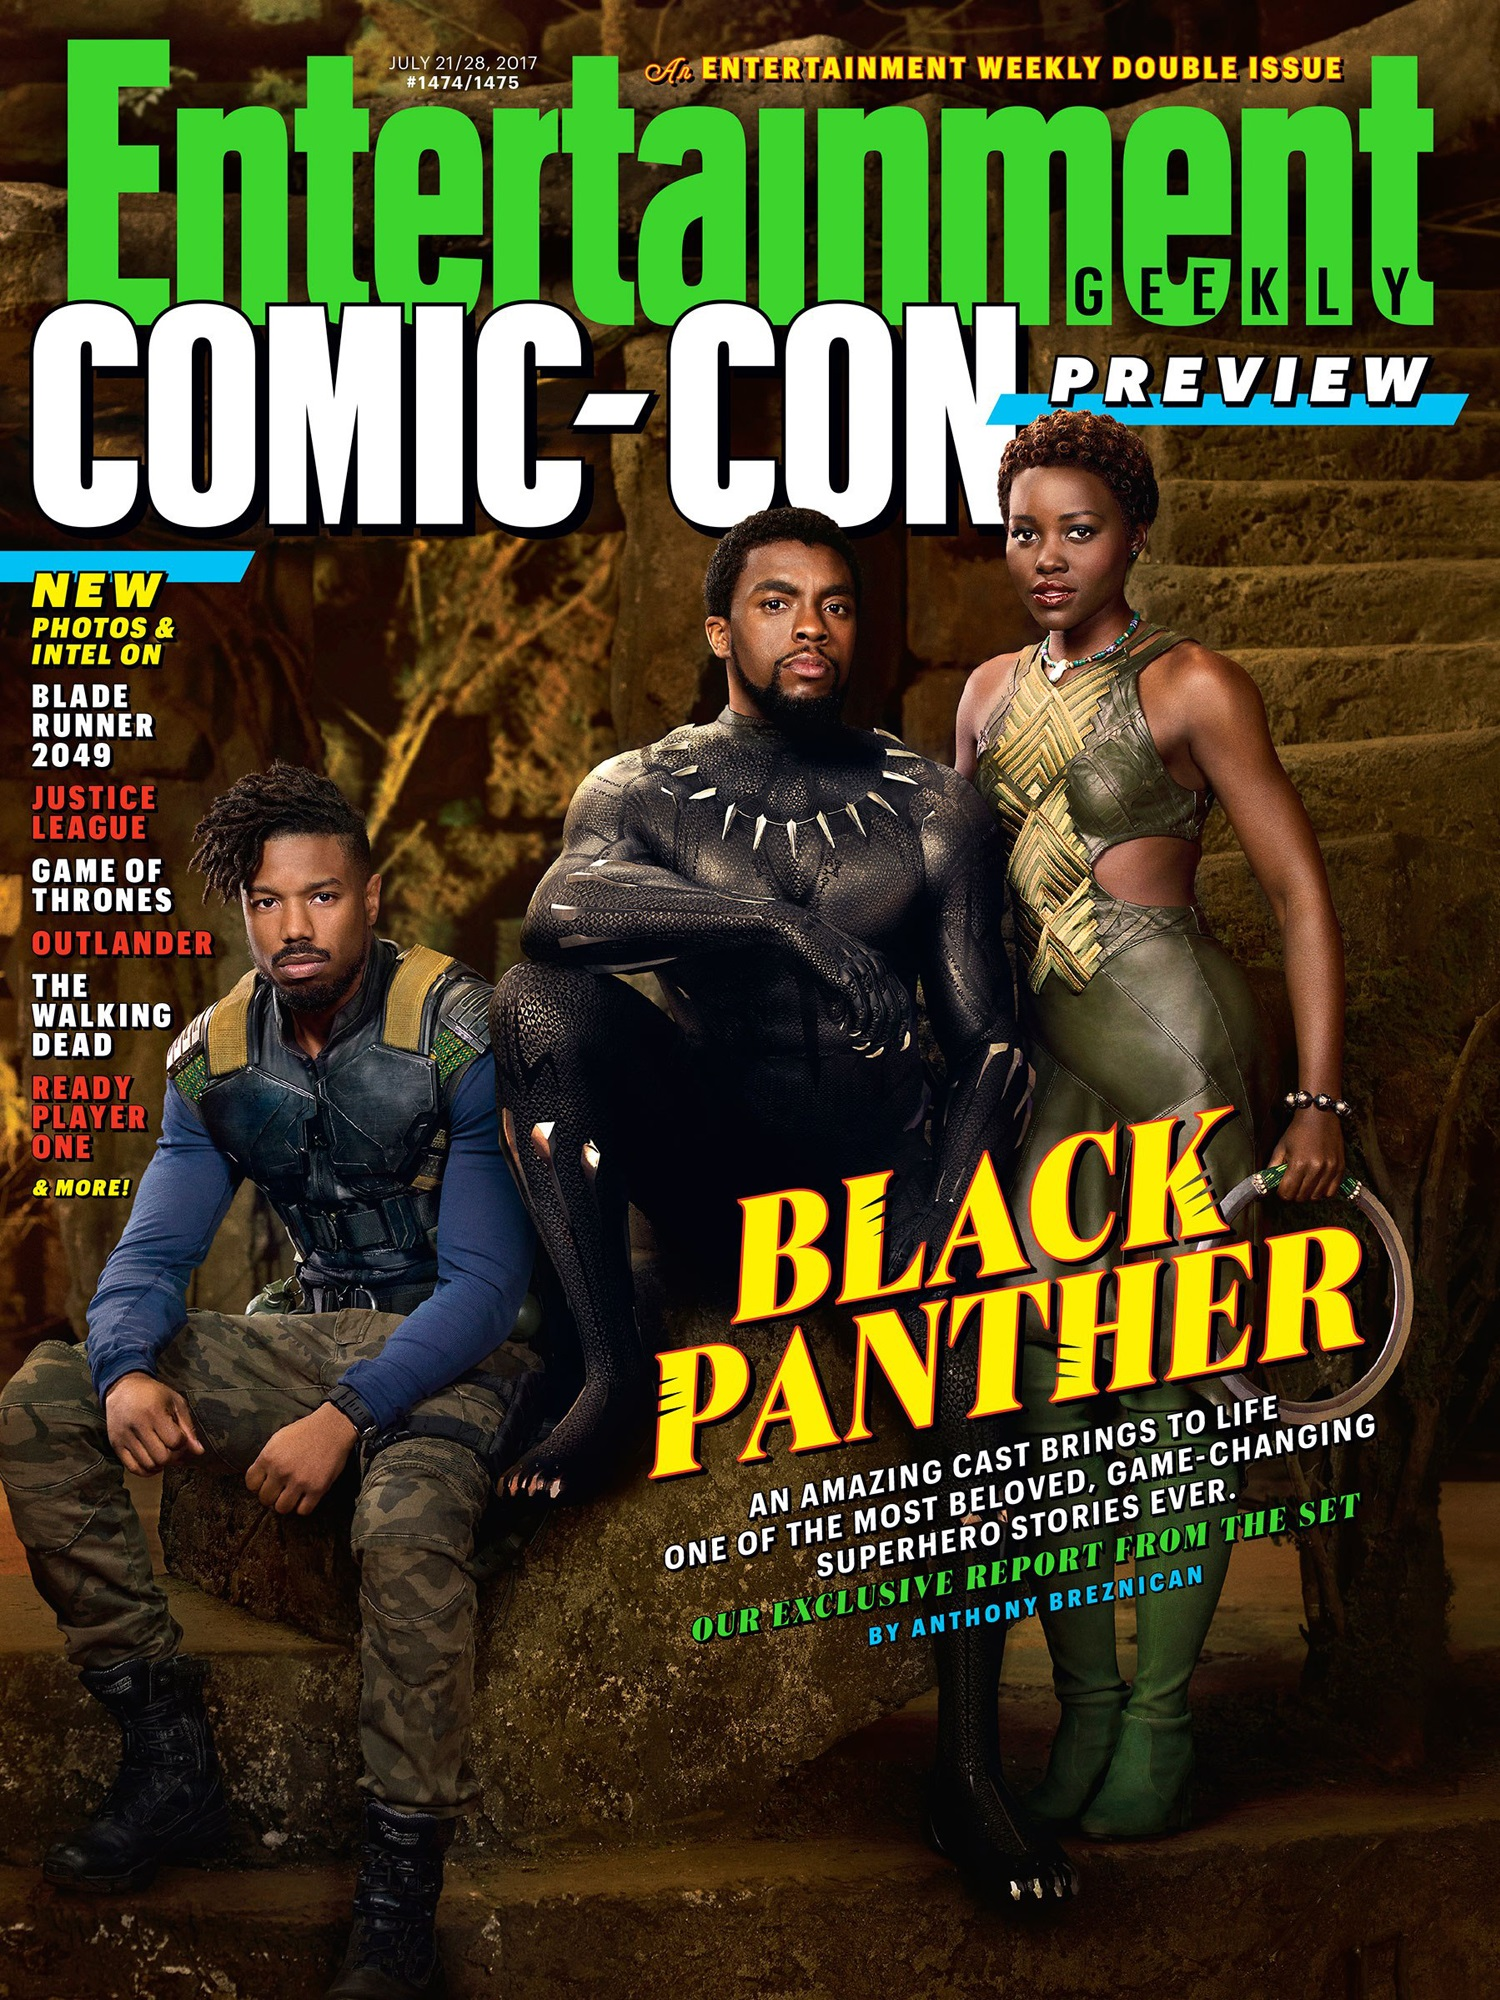 Magazine cover featuring Black Panther characters